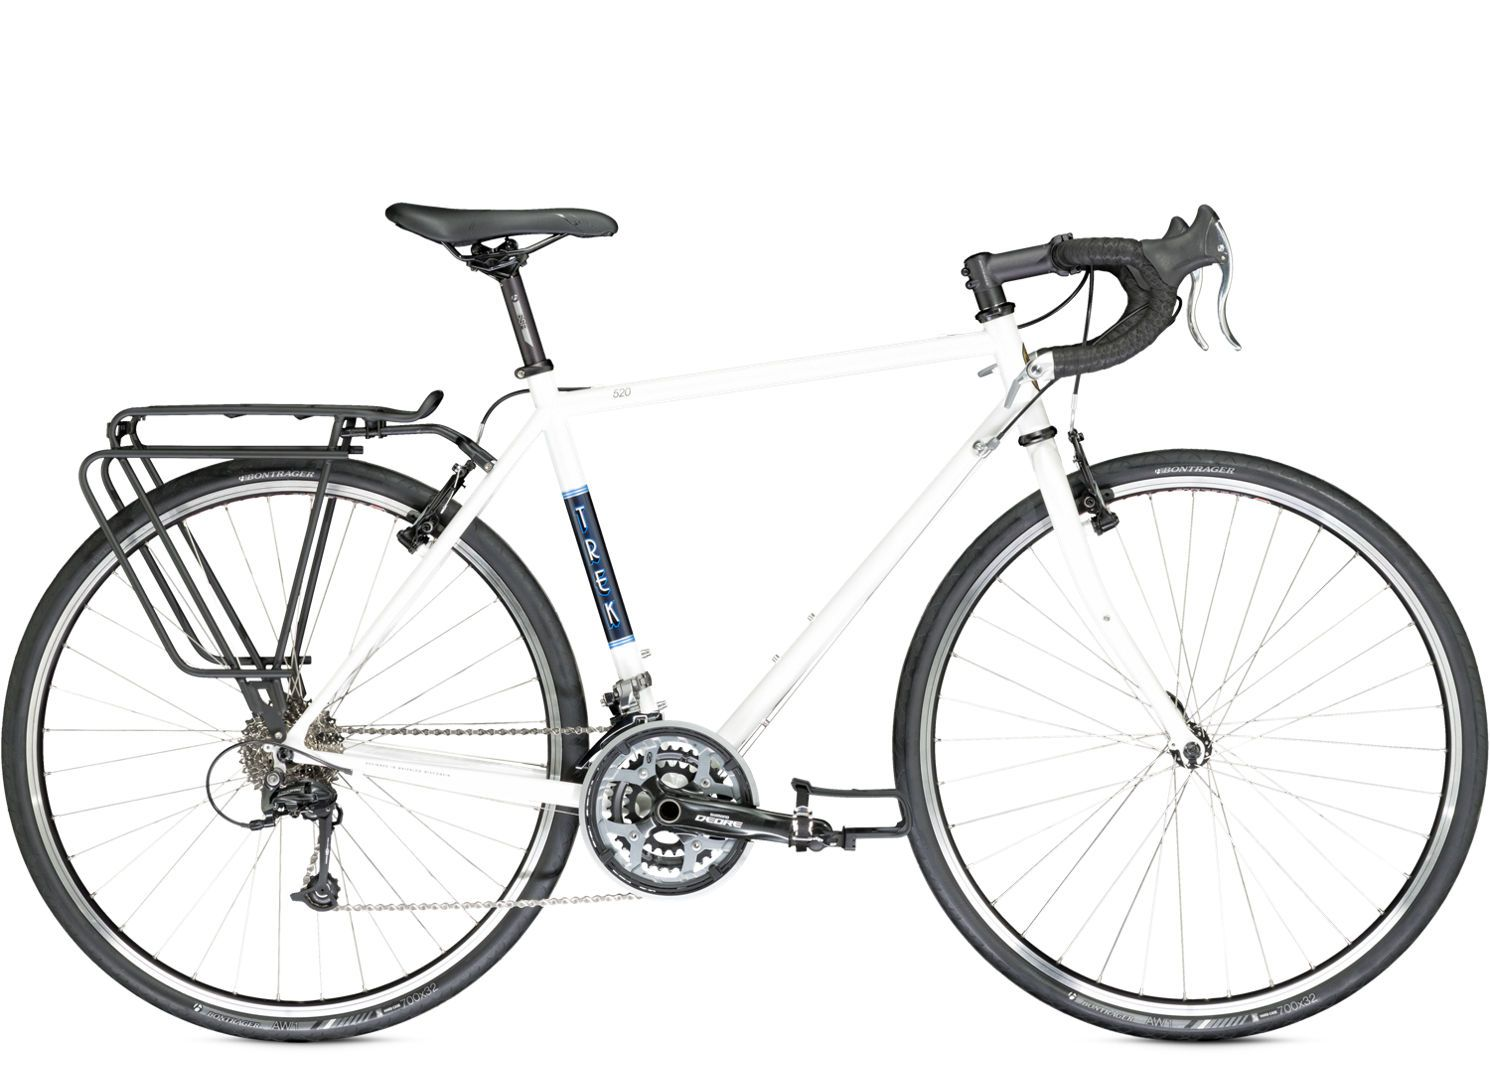 Touring: 520. Classic steel touring bike, perfected. Every